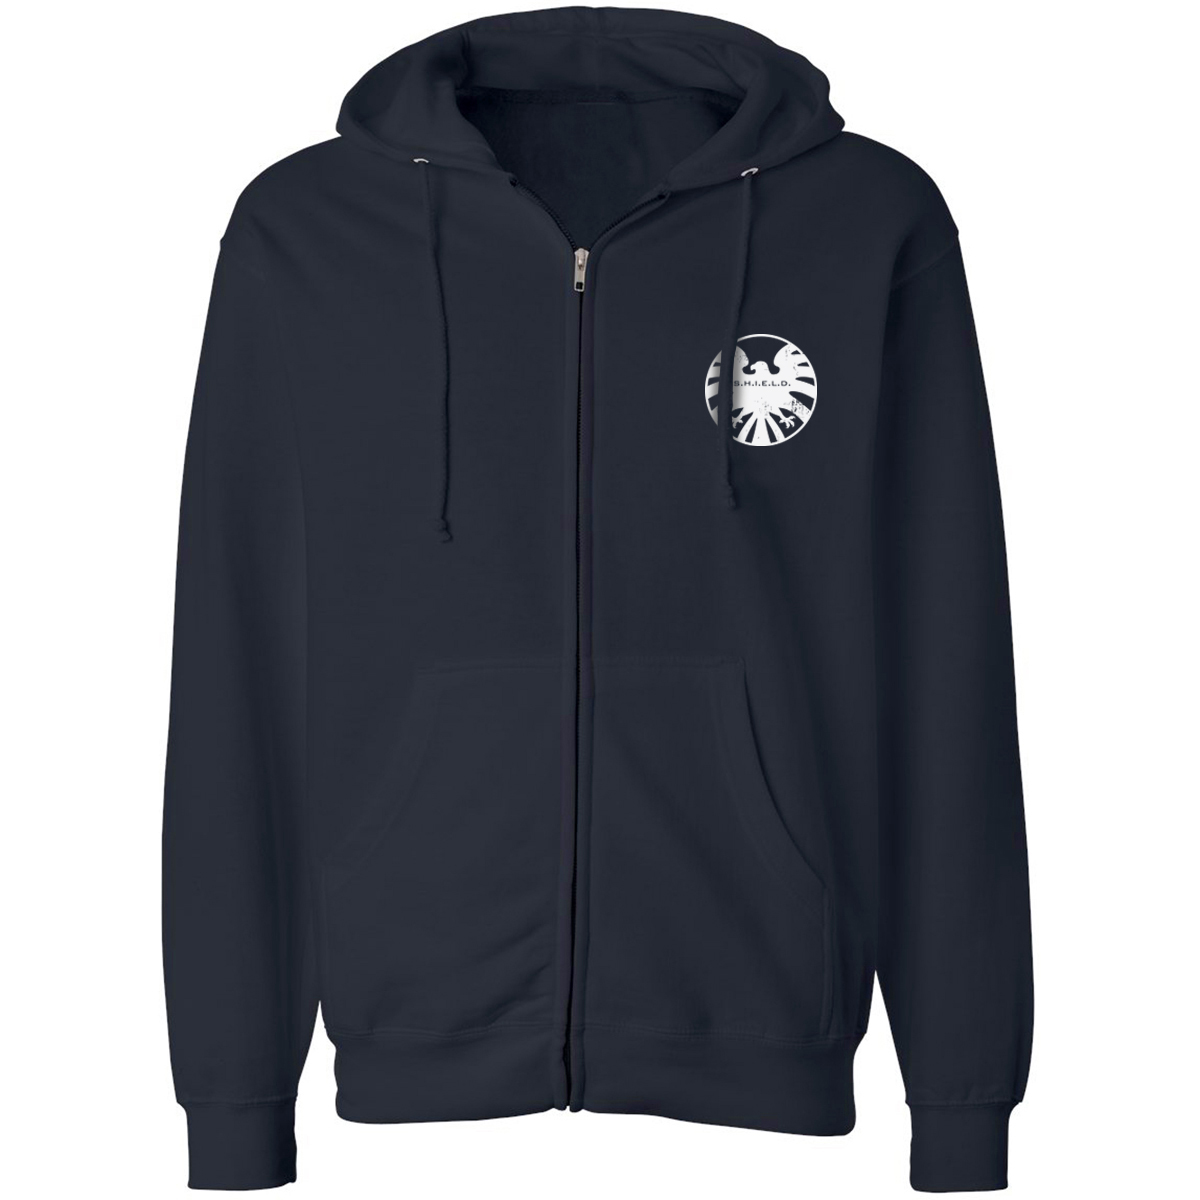 Marvel's Agents of S.H.I.E.L.D. Distressed Crest Zip Hoodie